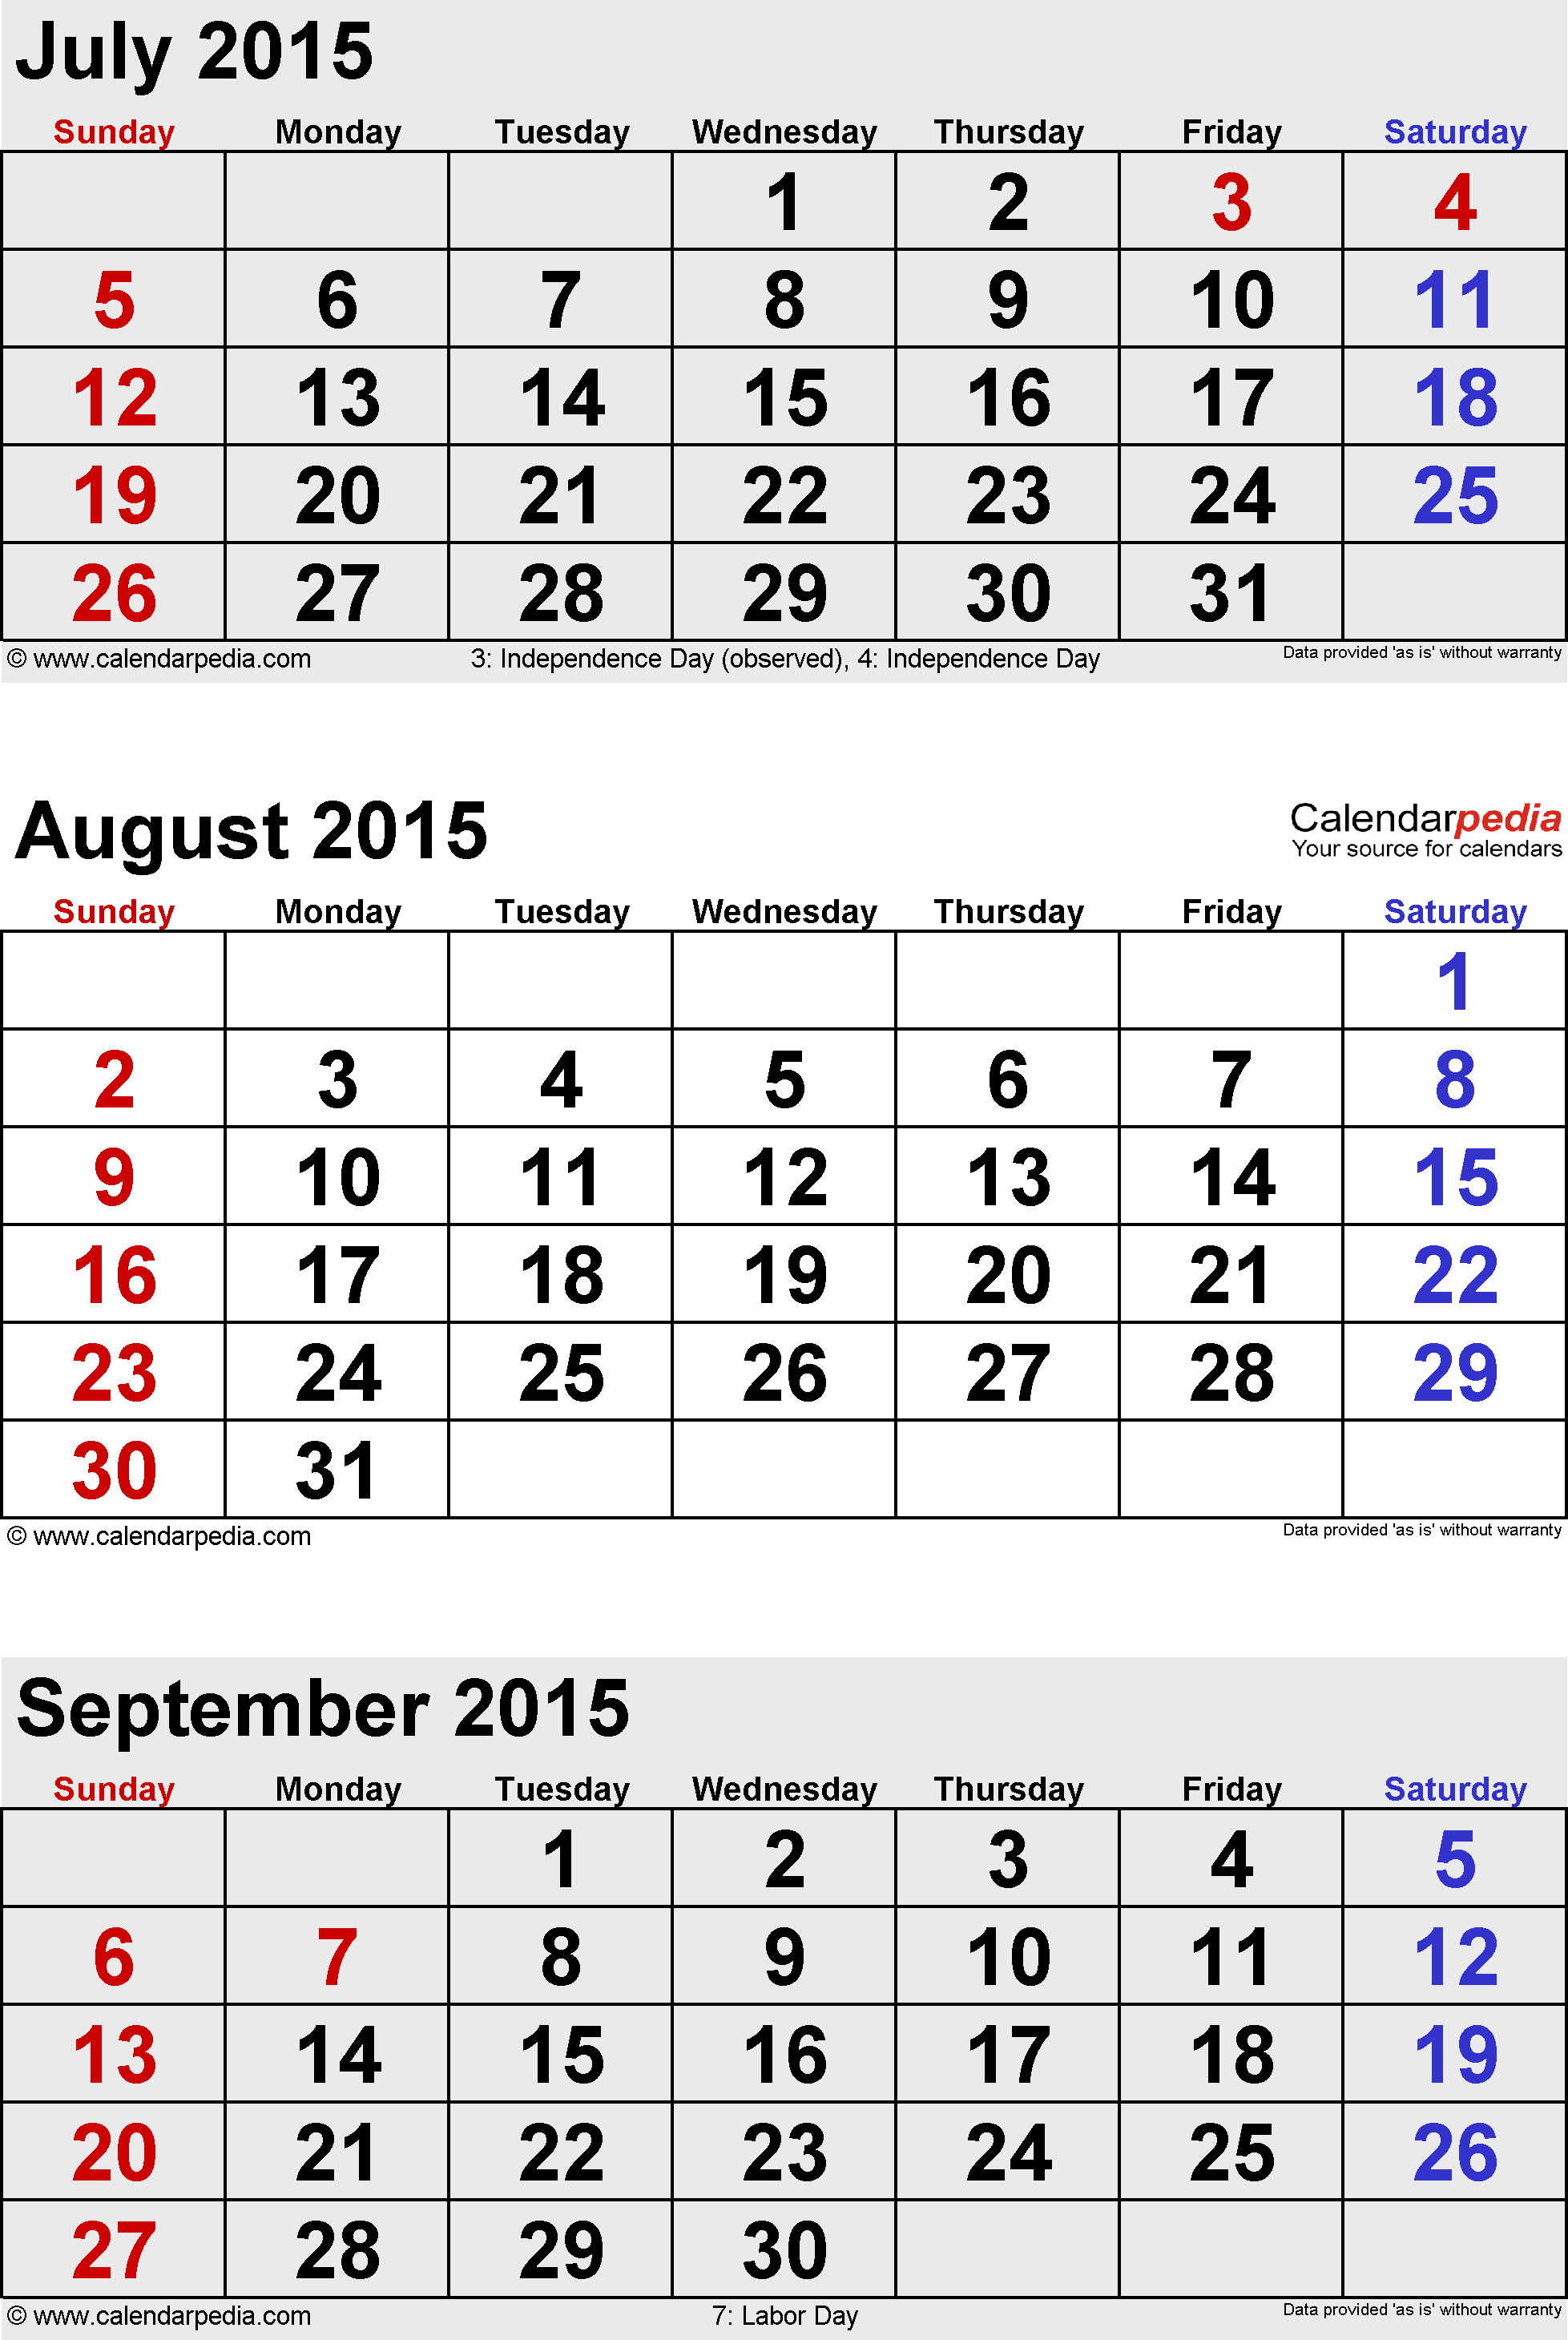 3 months calendar August/September/October 2015 in portrait format